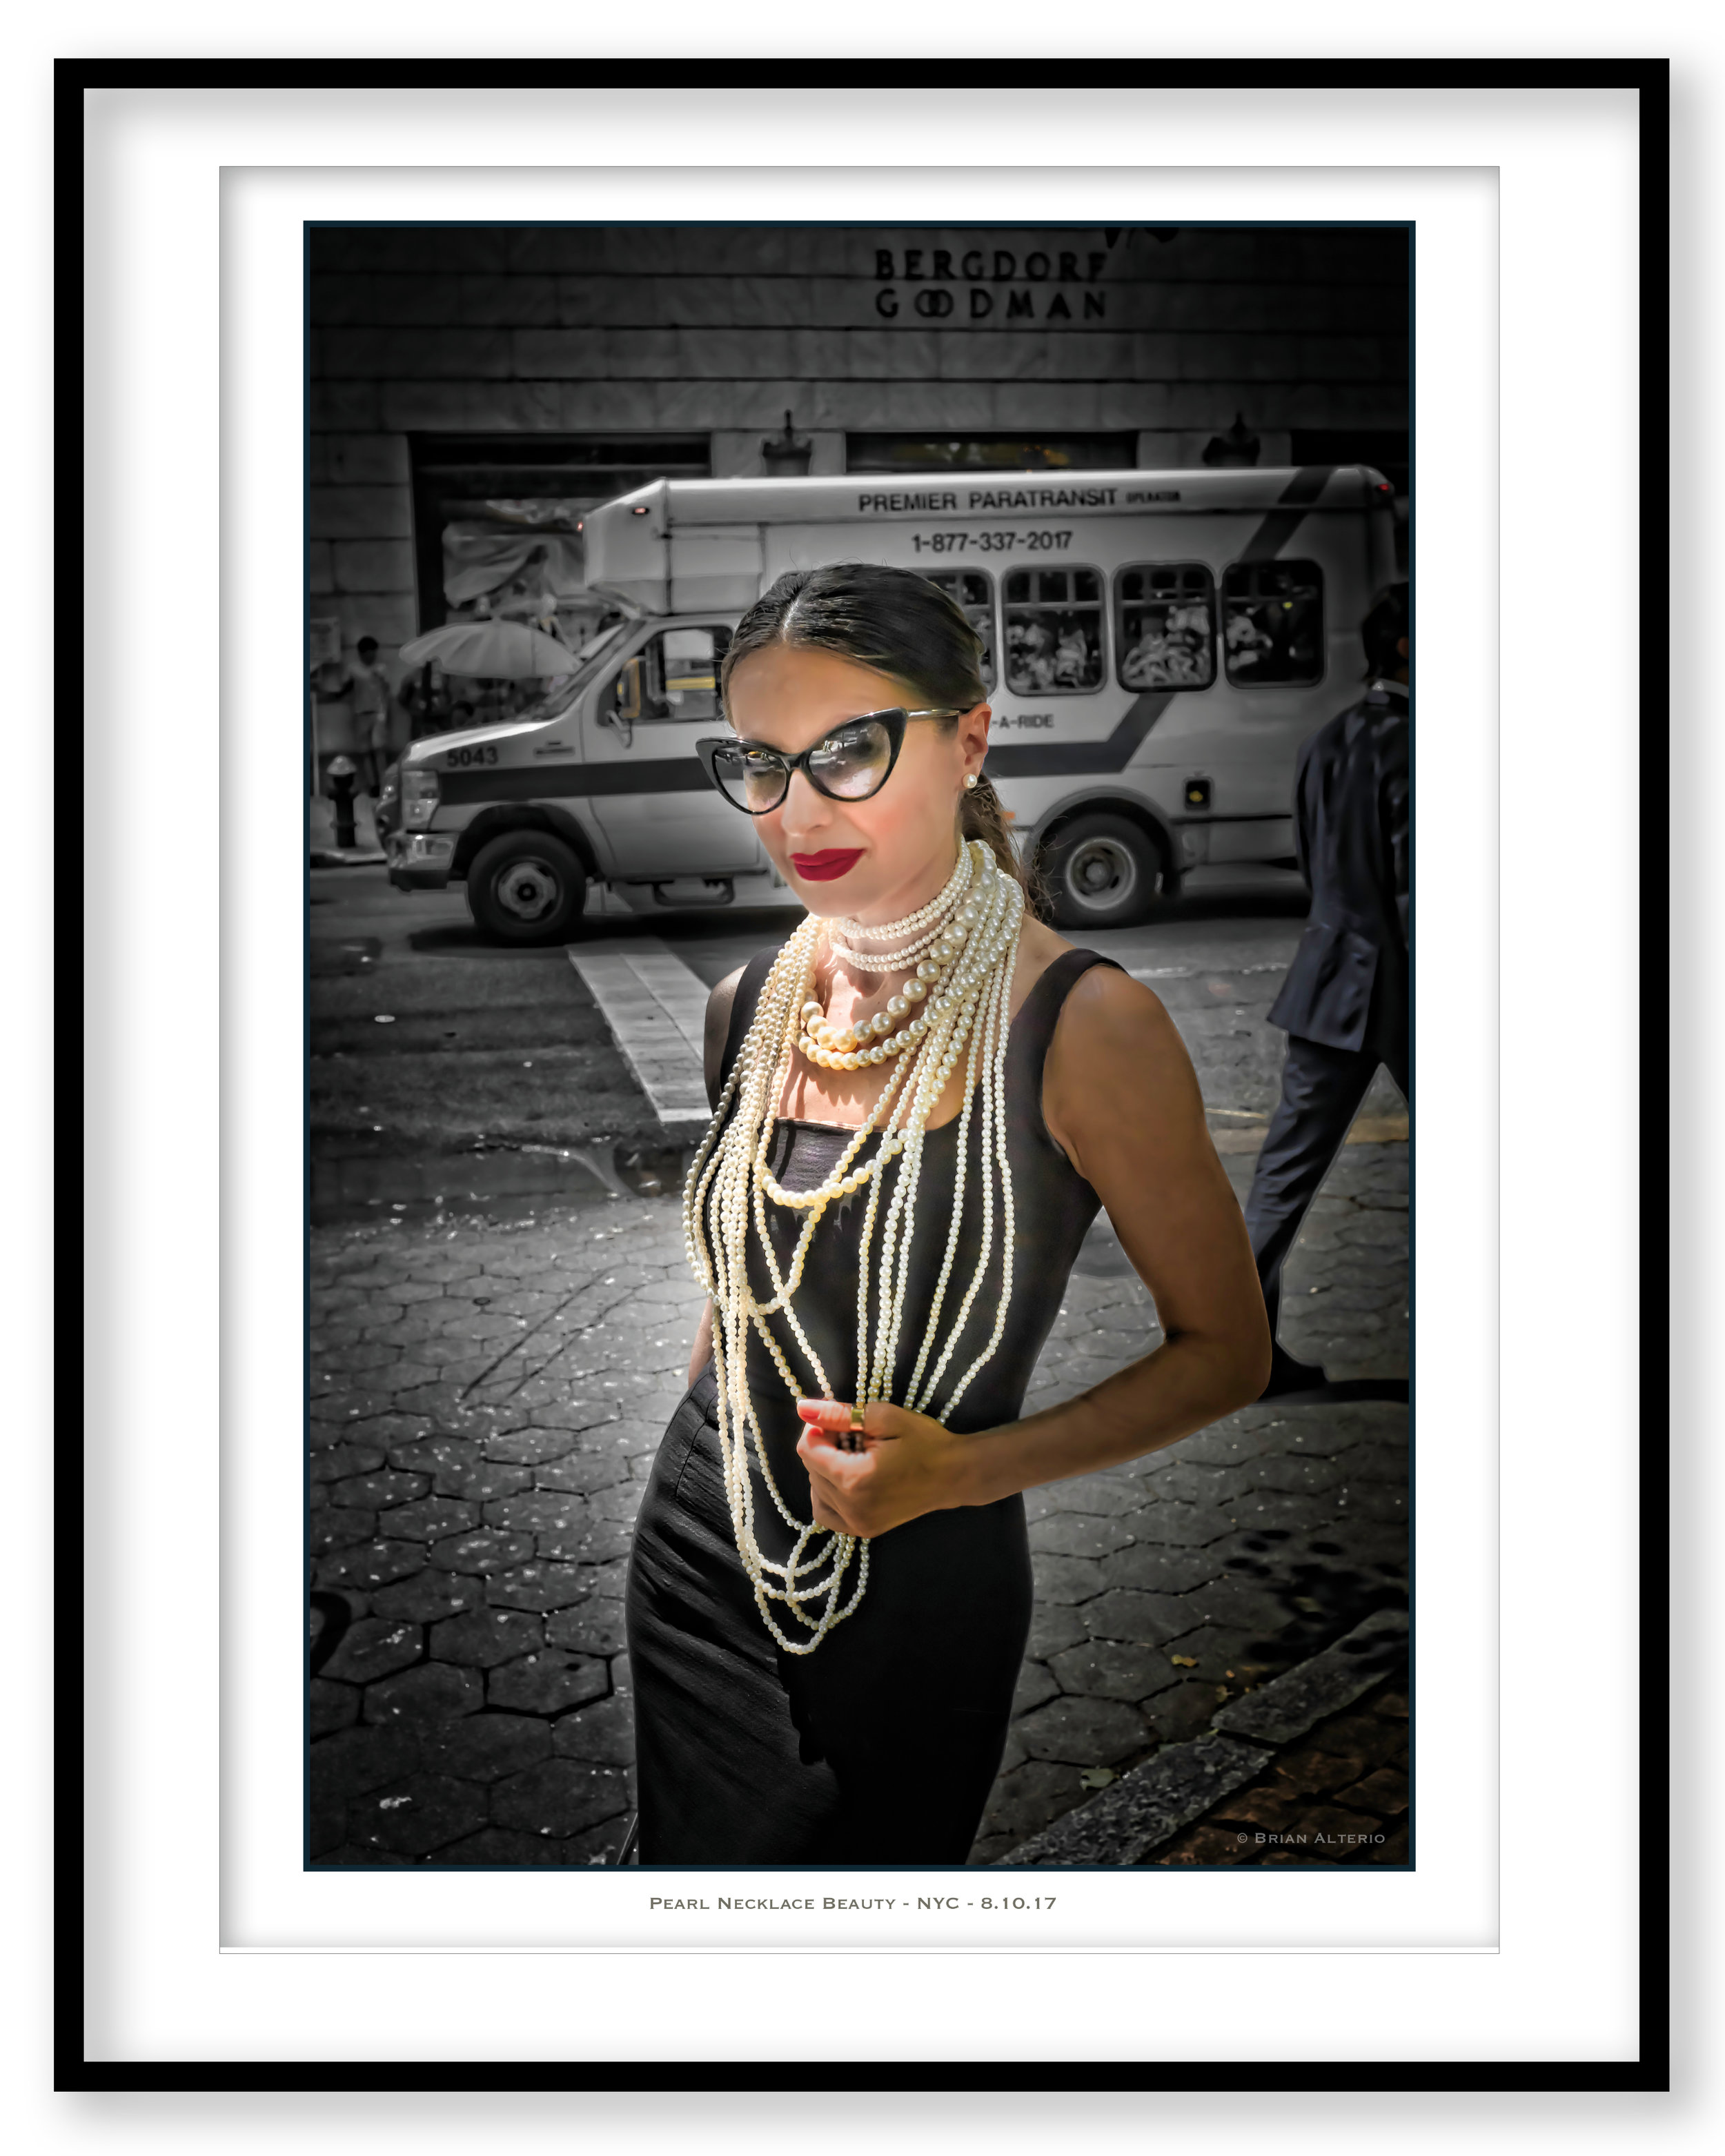 Pearl Necklace Beauty - NYC - 8.10.17 - Framed.jpg